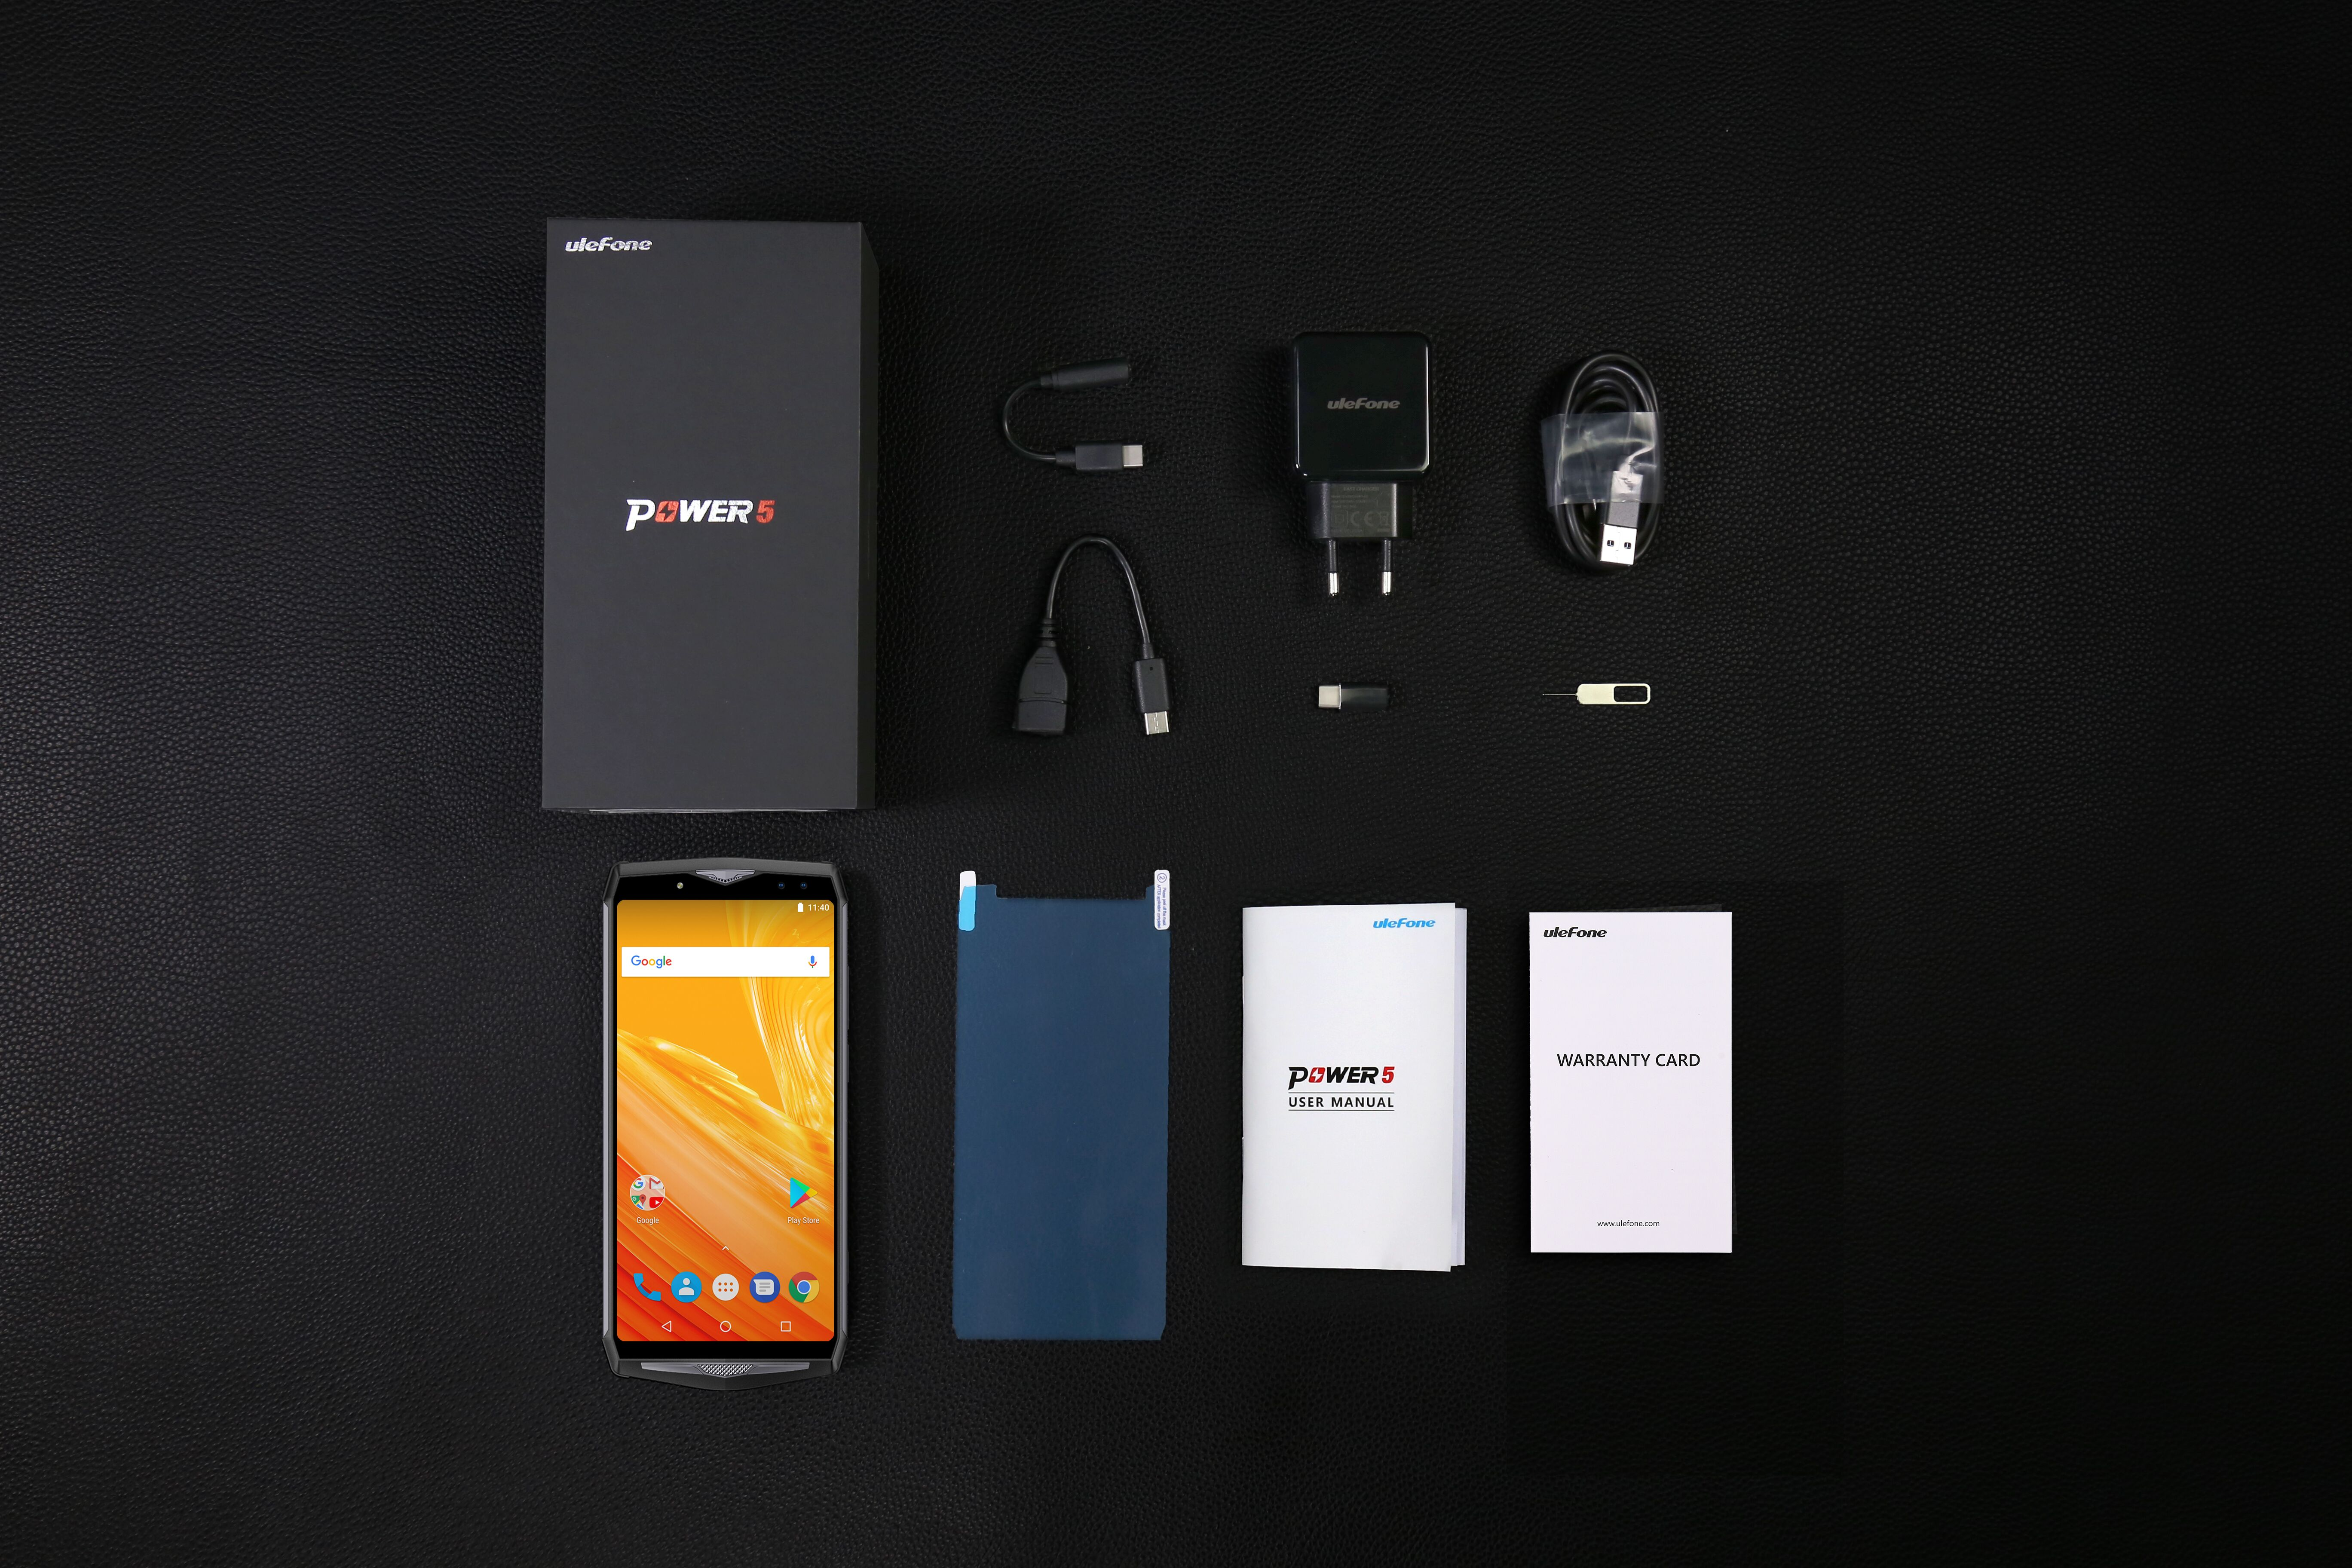 images/bulk-wholesale/Pre-Order-Ulefone-Power-5-Android-Phone-Octa-Core-CPU-Android-81-6GB-RAM-Dual-IMEI-13000mAh-6-Inch-FHD-Display-plusbuyer_993.jpg